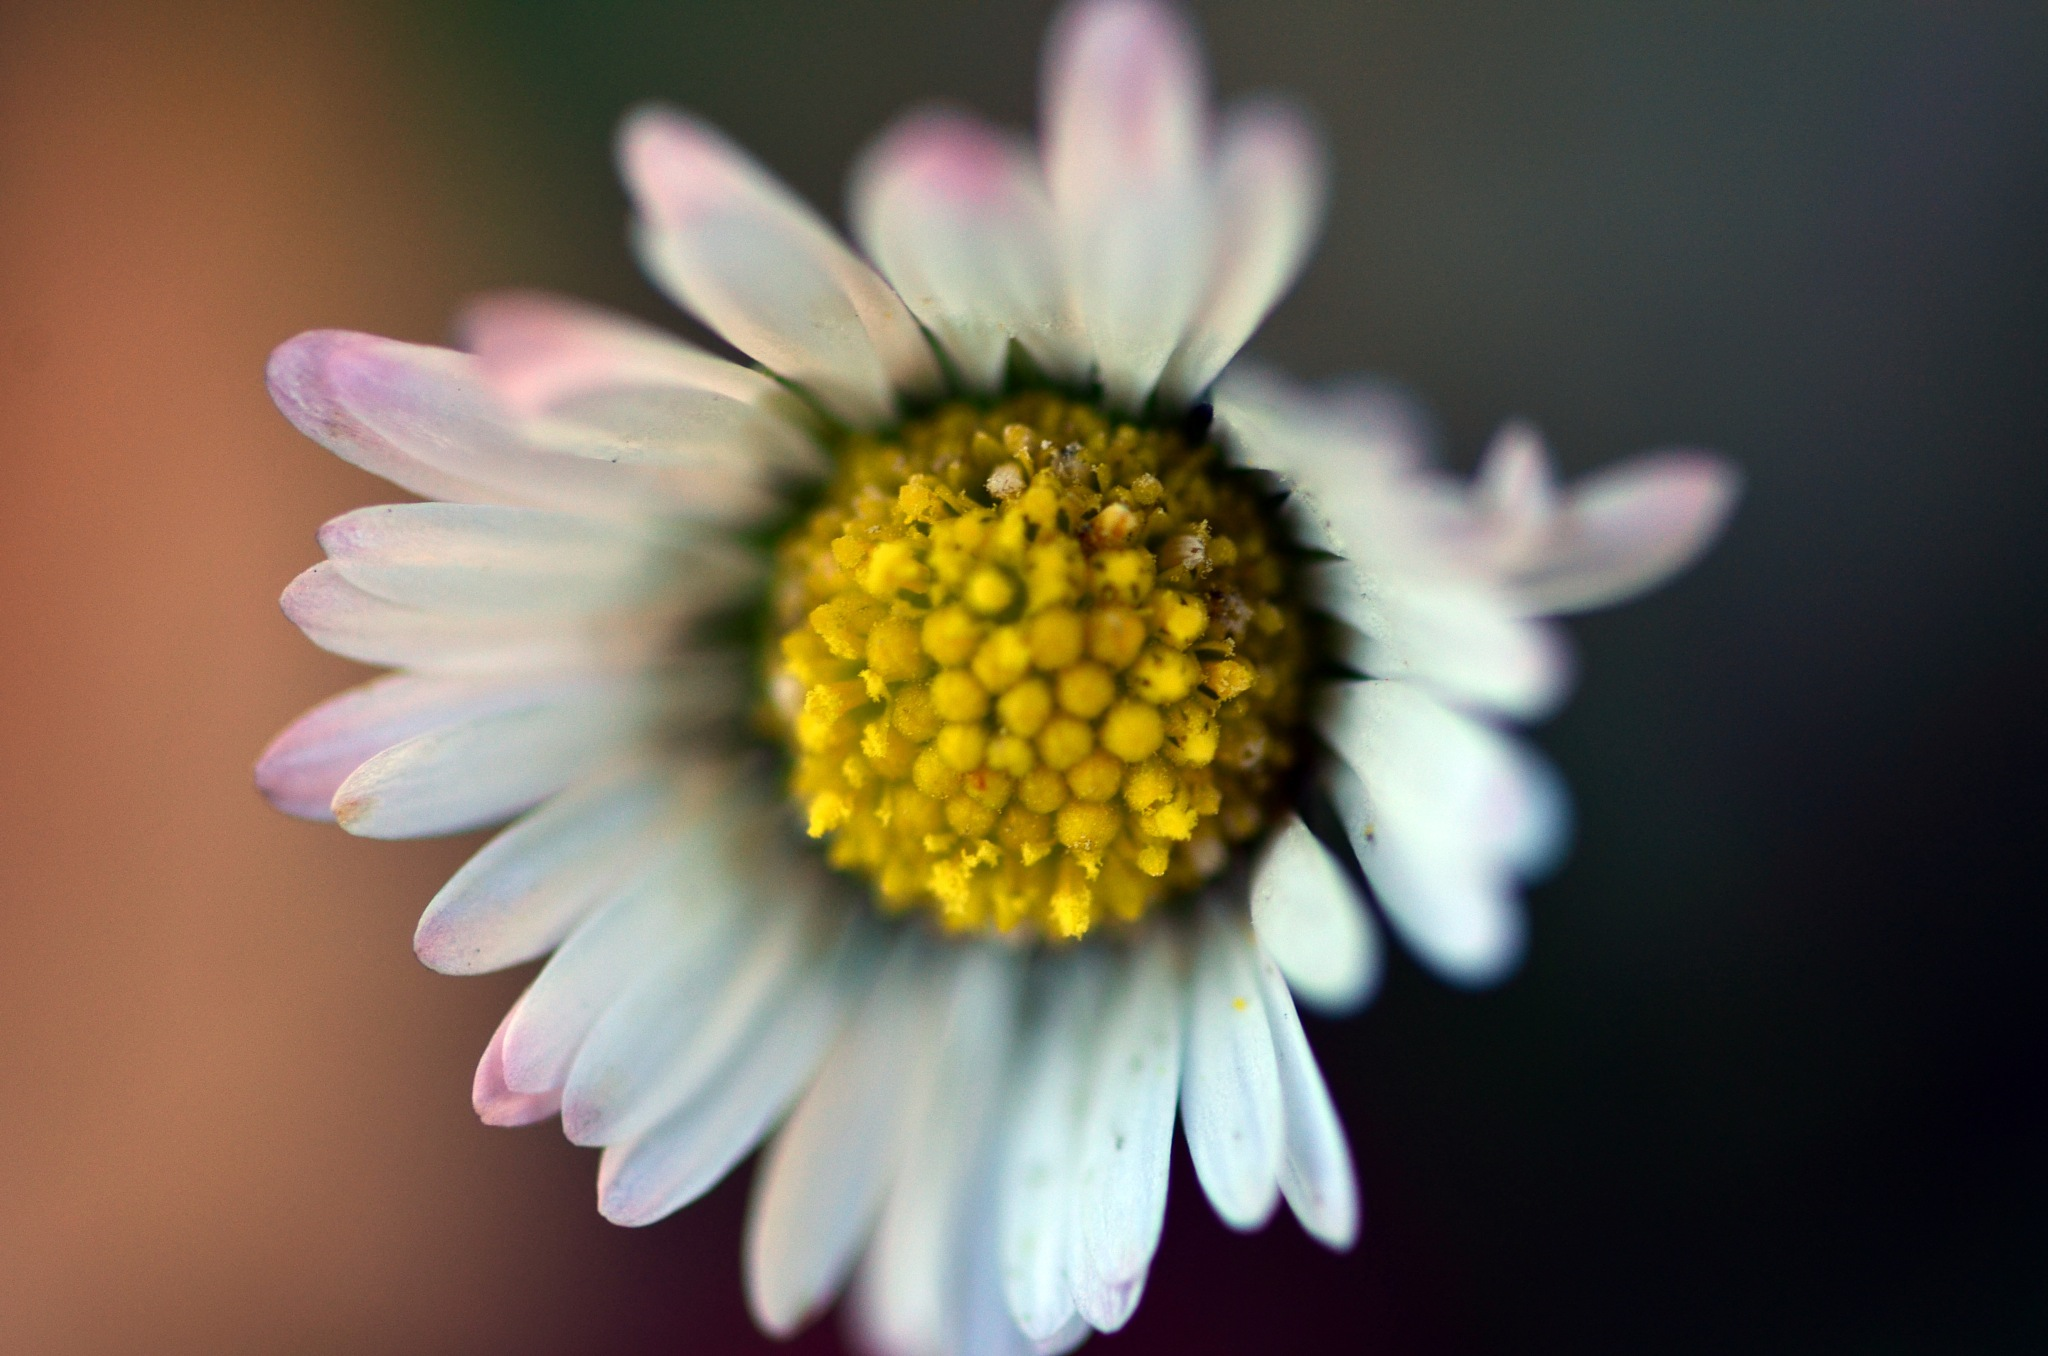 daisy by rollepersson